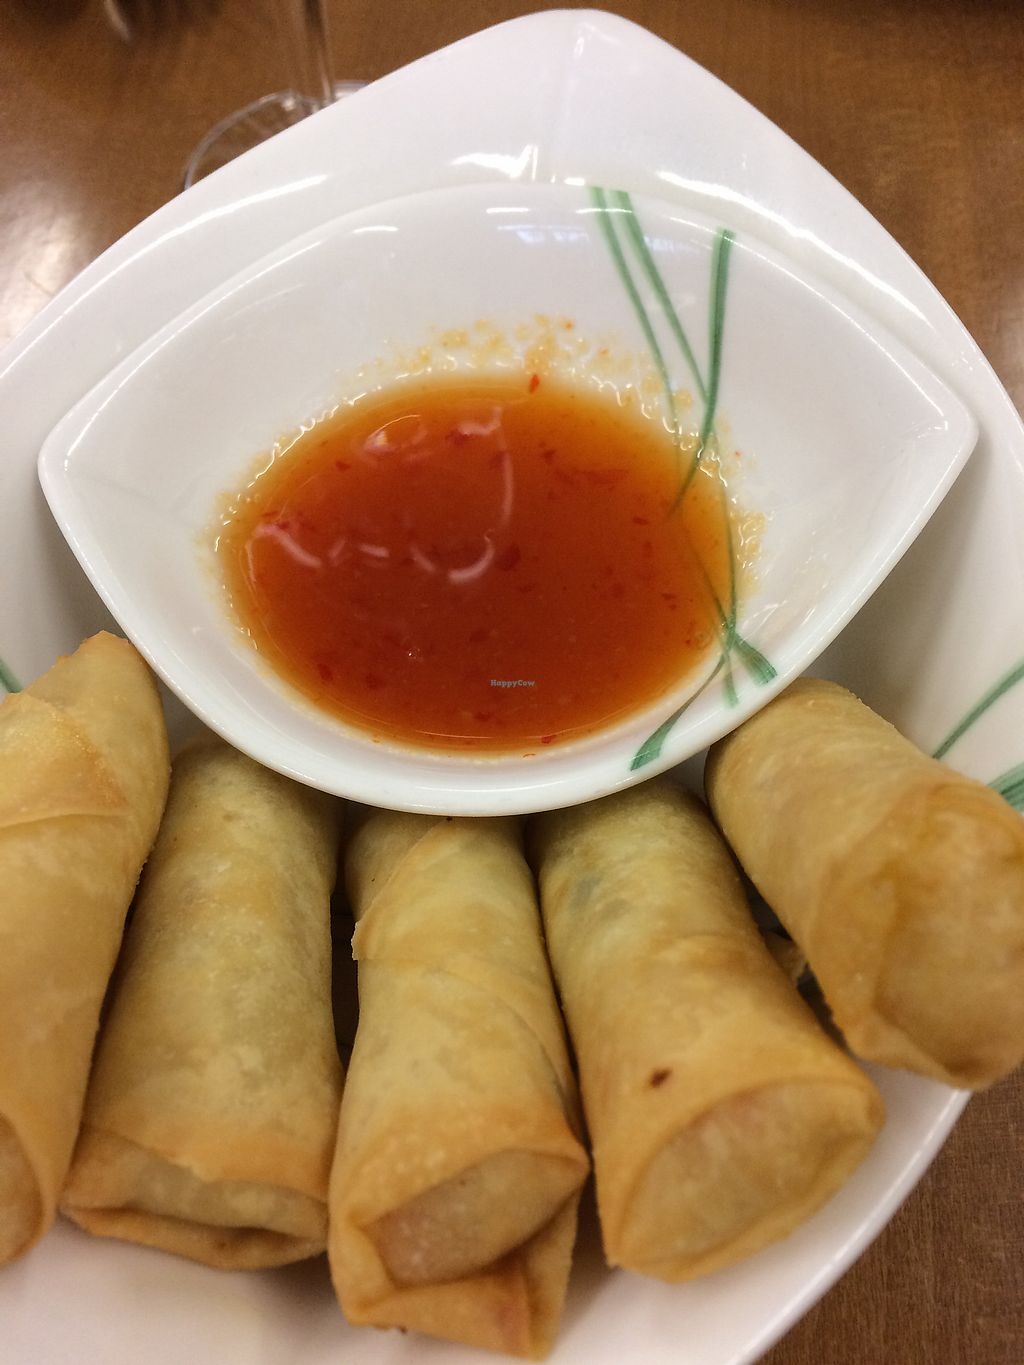 "Photo of Bo Tree Kitchen  by <a href=""/members/profile/CiaraSlevin"">CiaraSlevin</a> <br/>Spring Rolls  <br/> April 11, 2018  - <a href='/contact/abuse/image/117389/383663'>Report</a>"